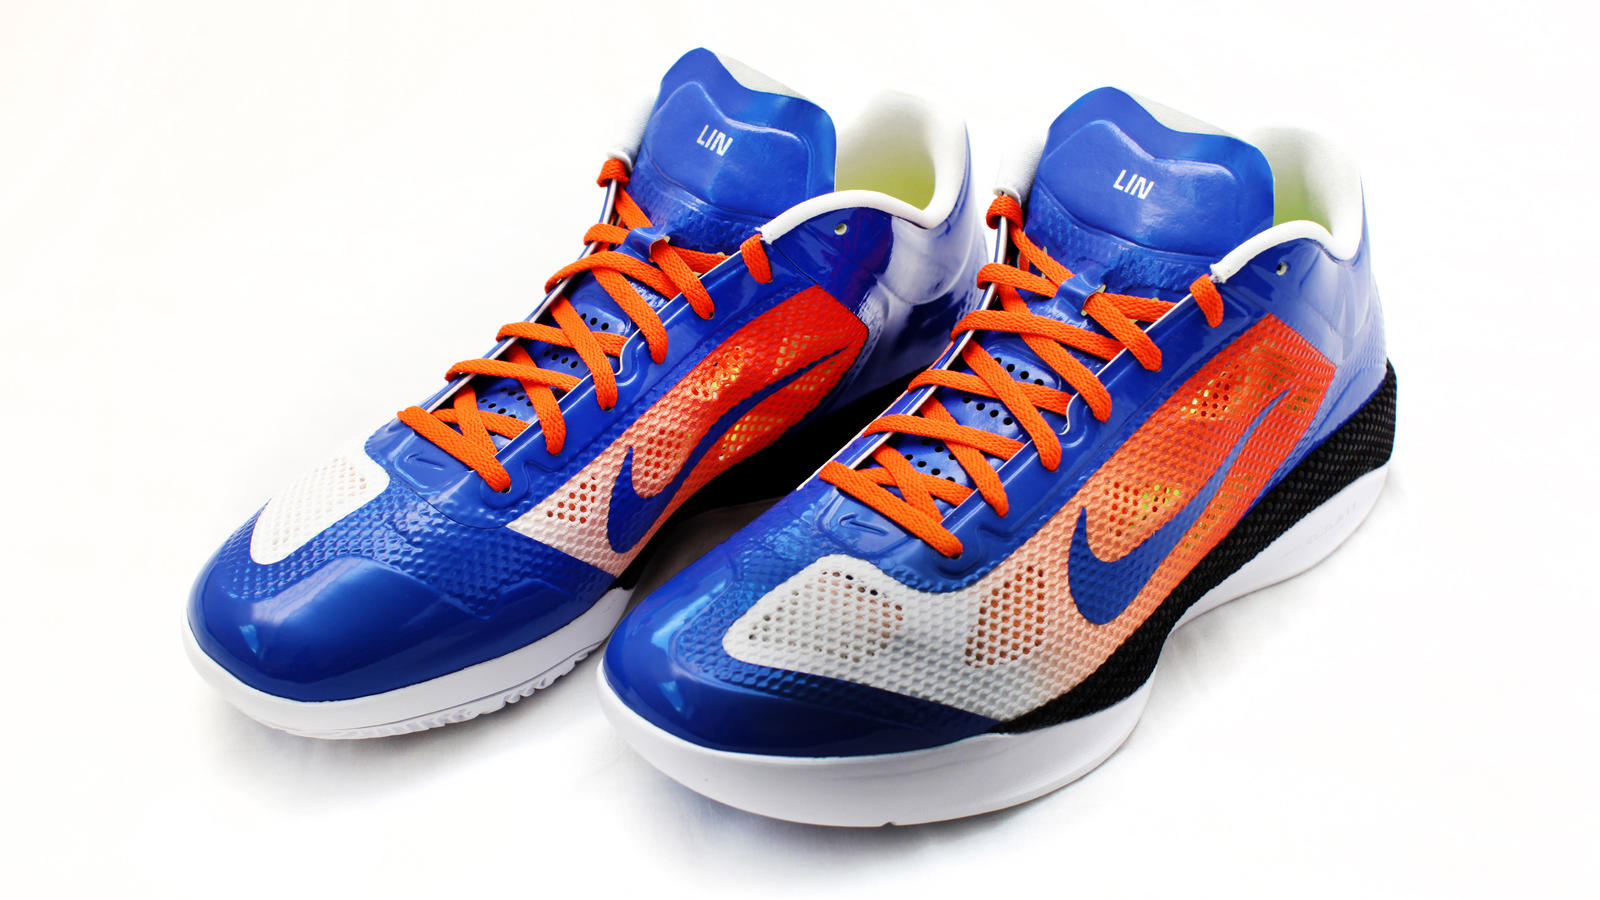 low priced 632c3 e49d5 Jeremy Lin will wear a new Nike Zoom Hyperfuse Low iD basketball shoe this  weekend in Orlando beginning Friday evening. Customized for Lin, the Nike  Zoom ...